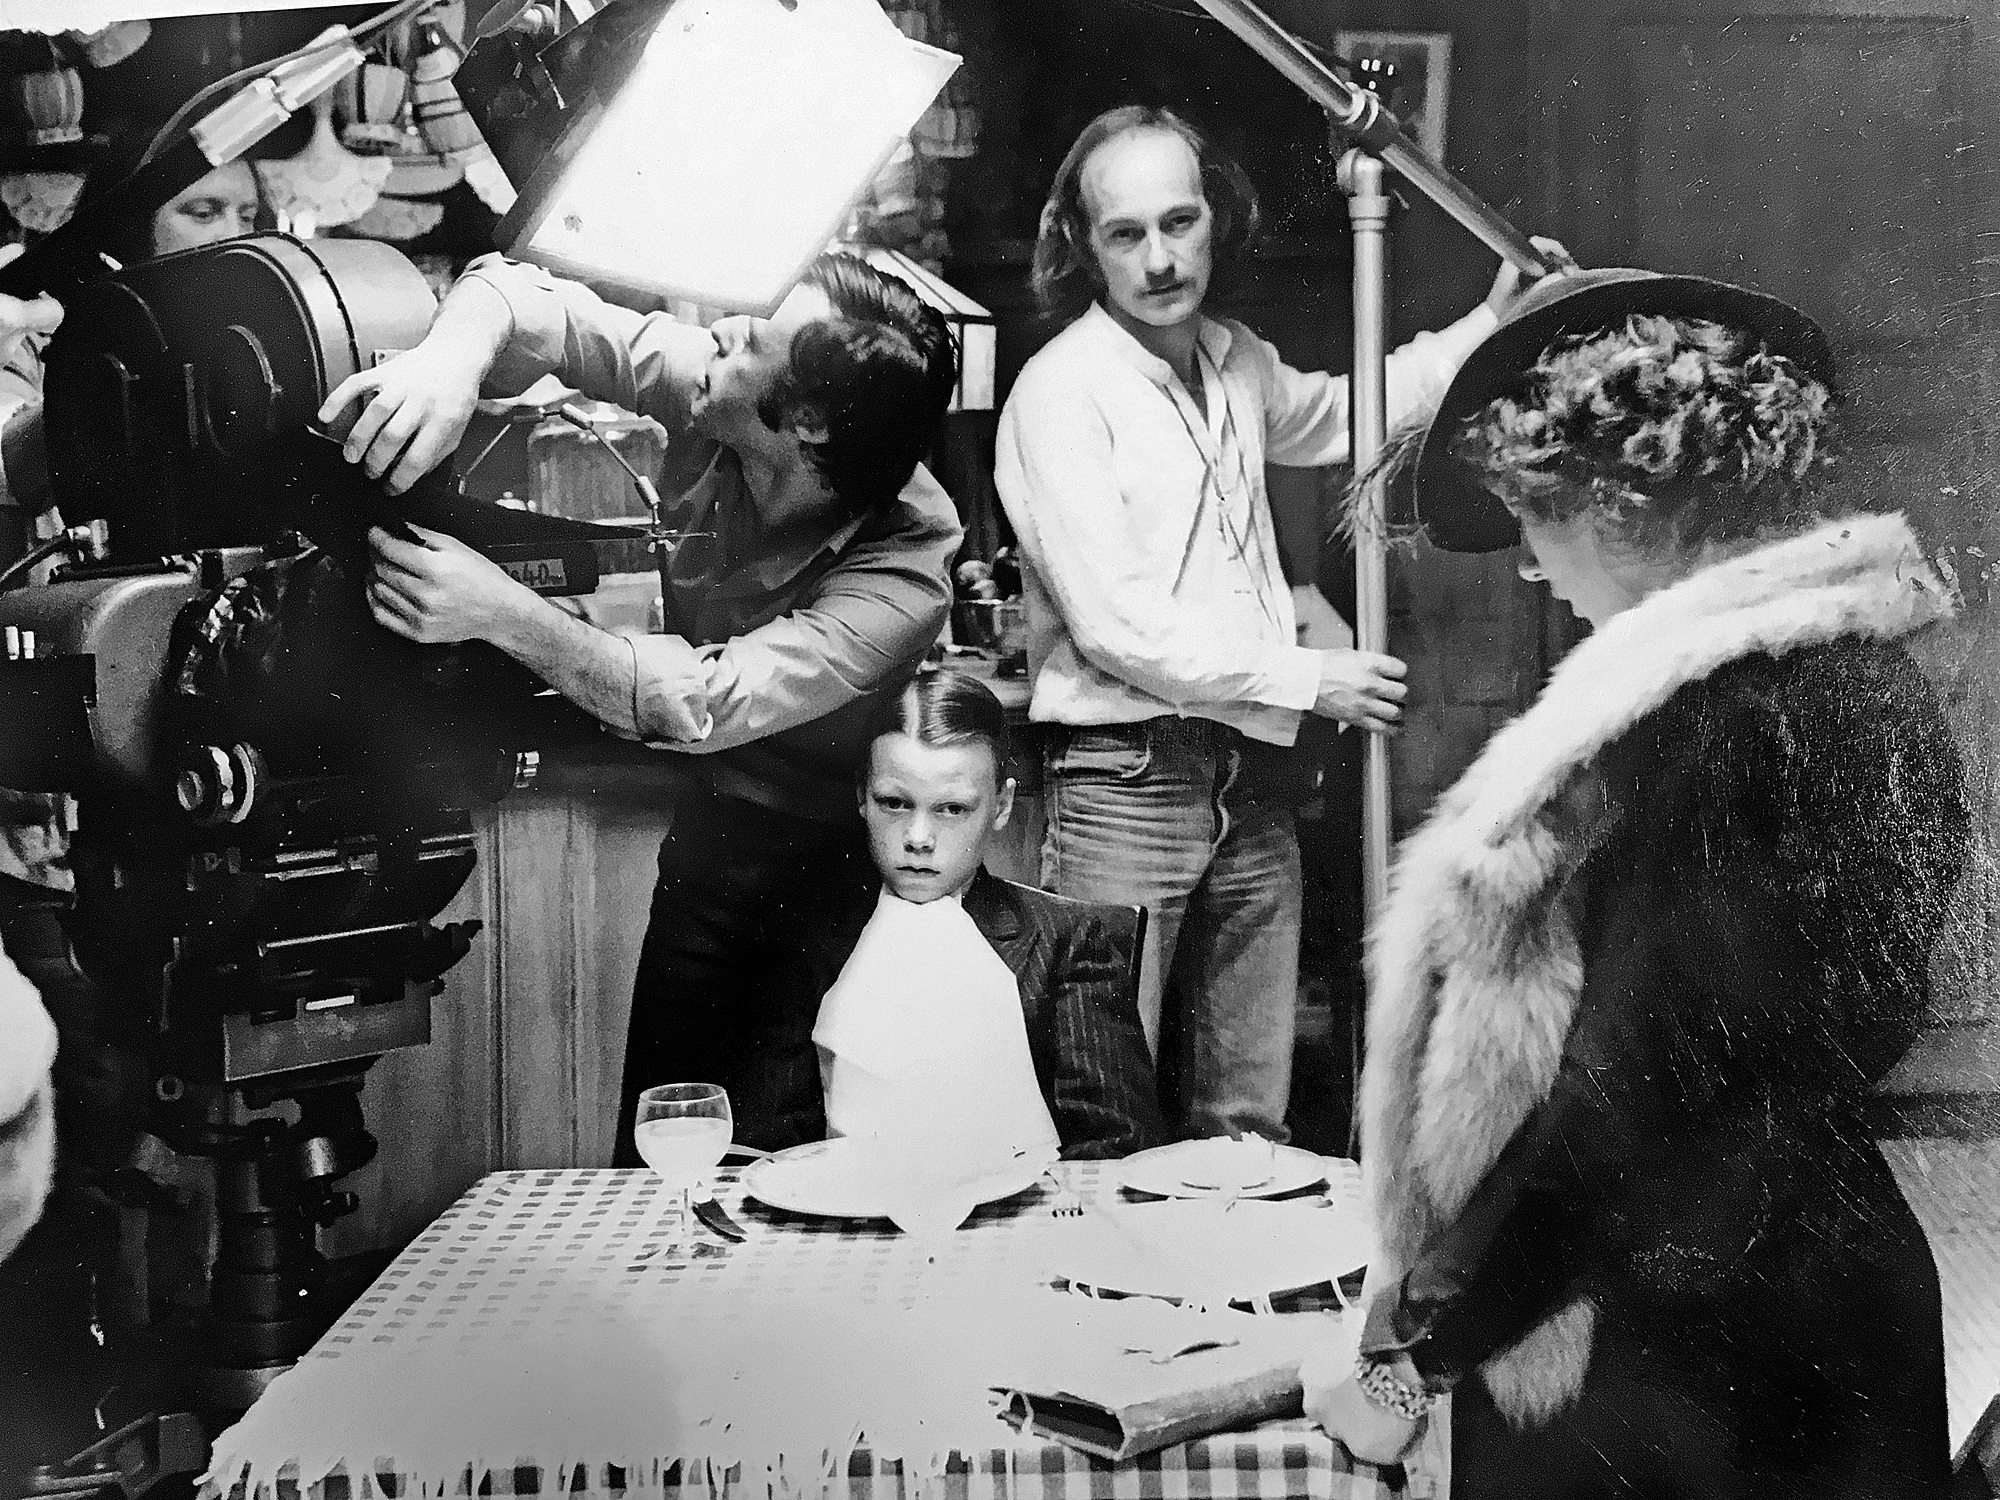 Peter Biziou and Brian Harris (excellent focus) with John Stanier ('a great op') behind the camera on <em>Bugsy Malone</em>